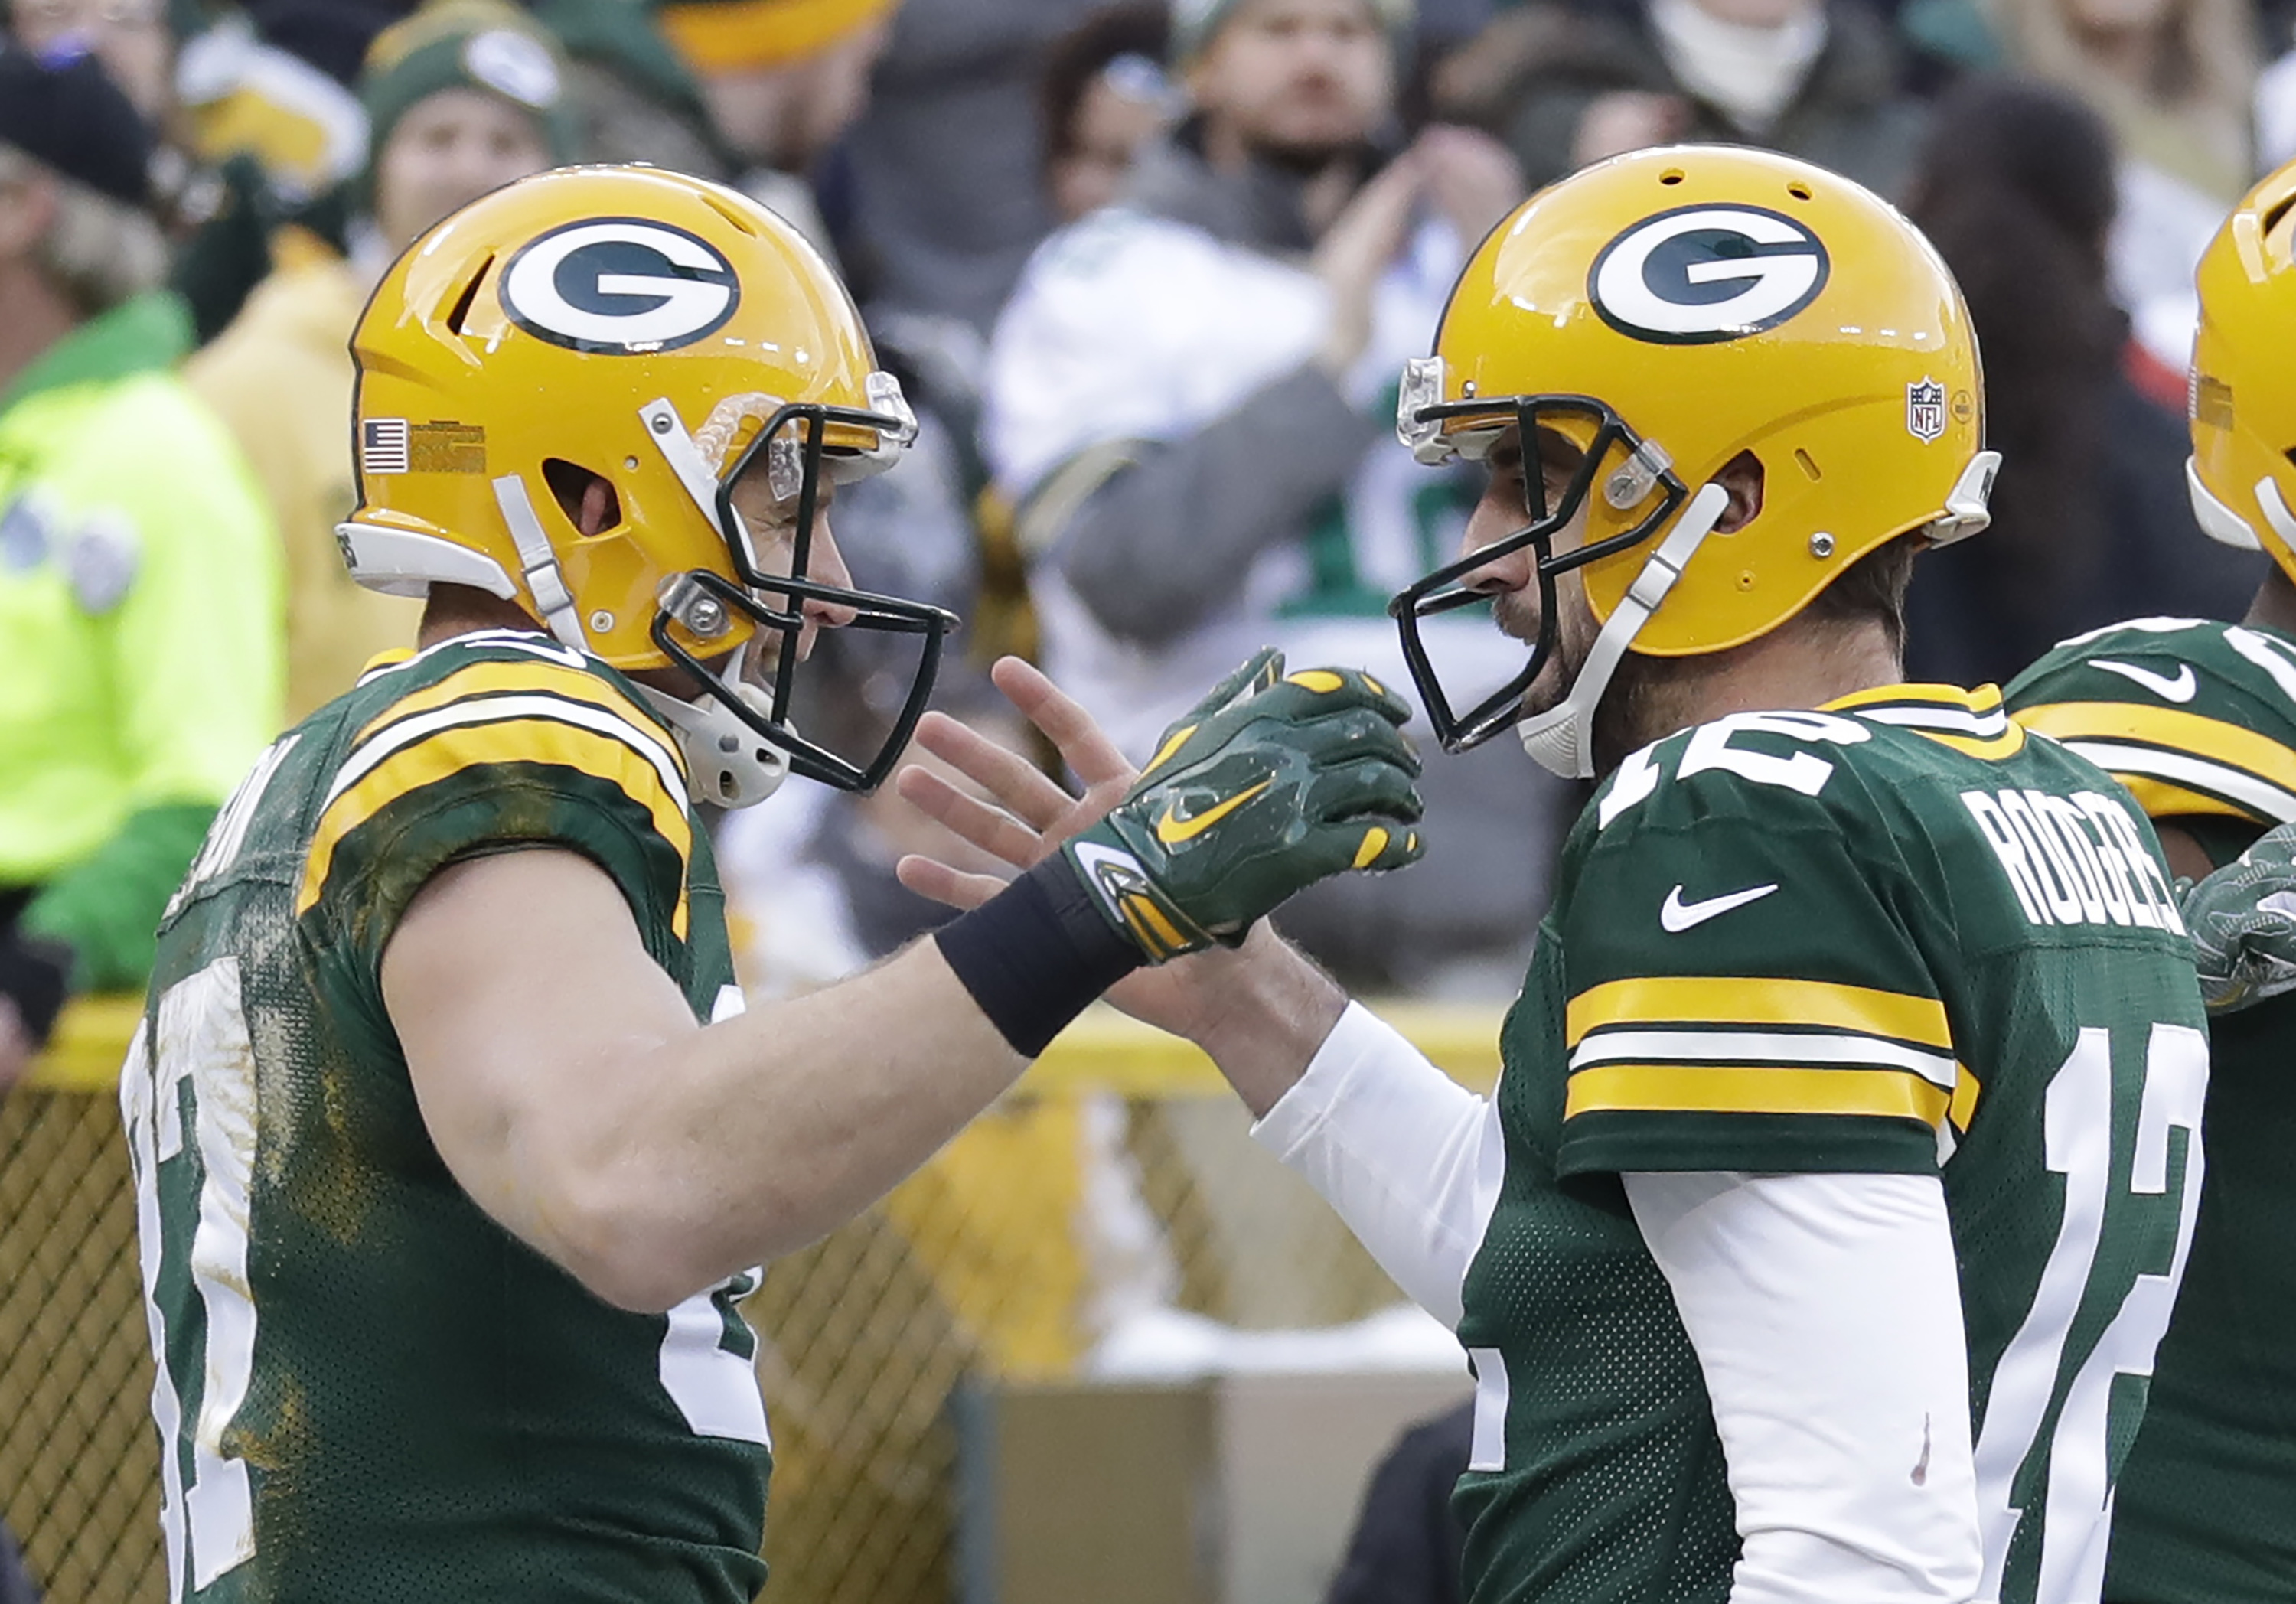 Green Bay Packers' Jordy Nelson celebrates his touchdown catch with Aaron Rodgers during the first half of an NFL football game against the Minnesota Vikings Saturday, Dec. 24, 2016, in Green Bay, Wis. (AP Photo/Morry Gash)